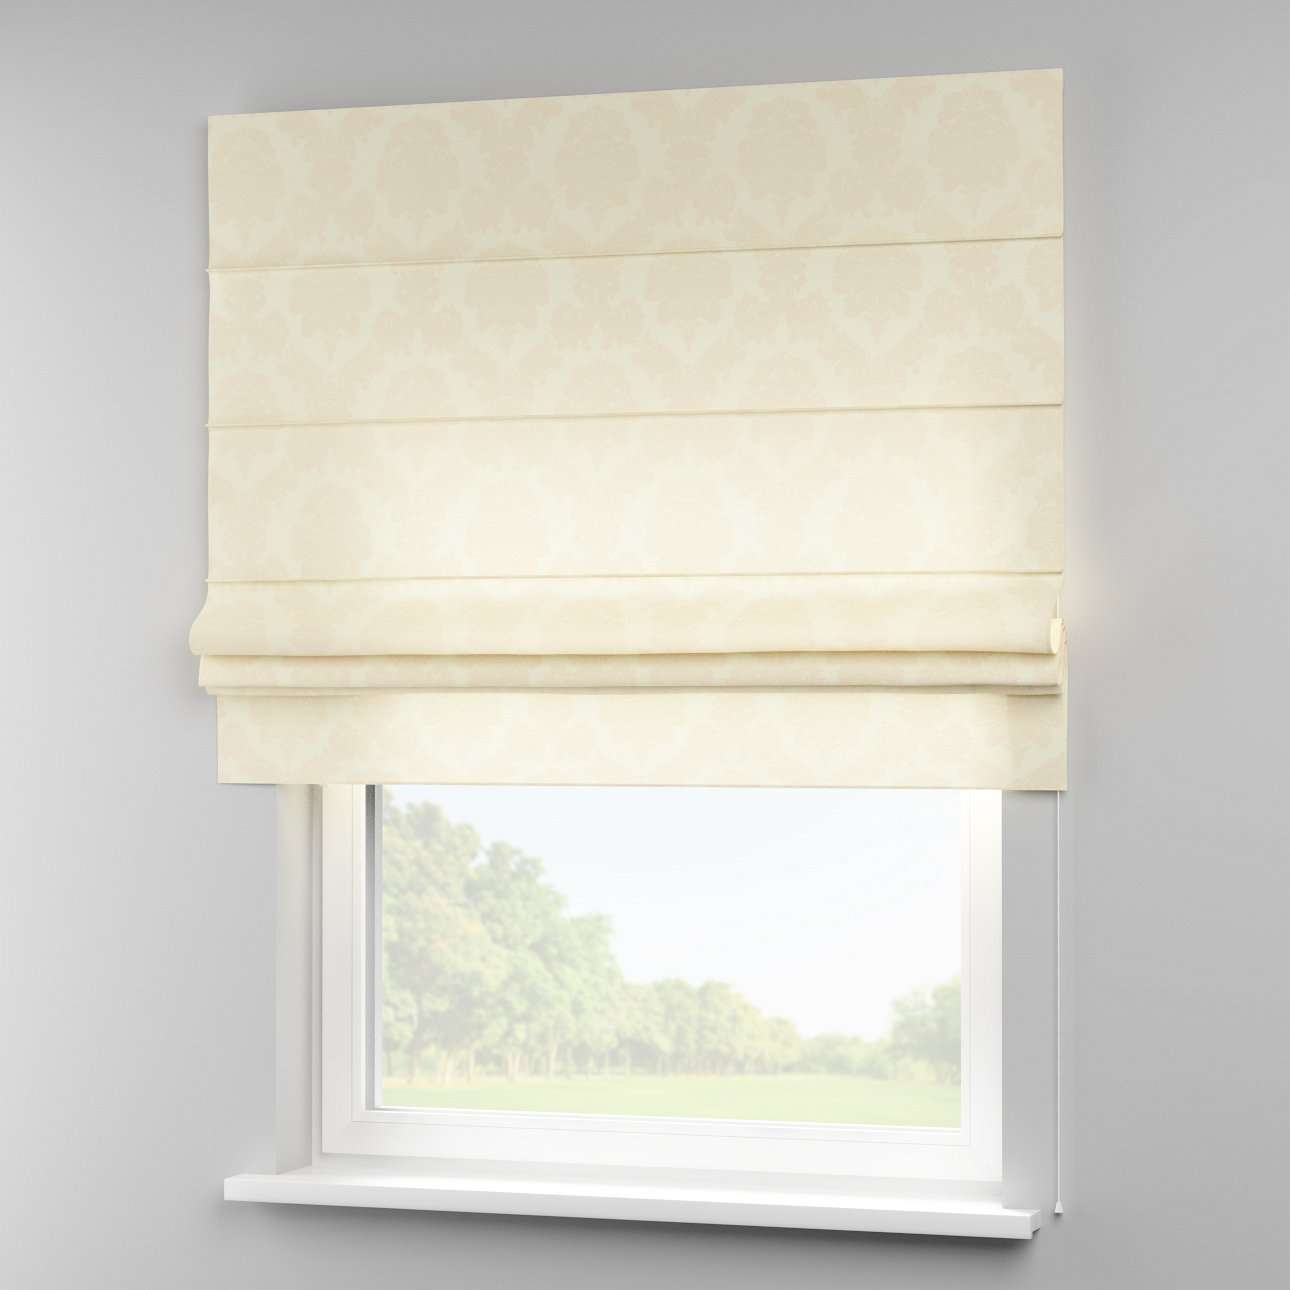 Padva roman blind  80 x 170 cm (31.5 x 67 inch) in collection Damasco, fabric: 613-01